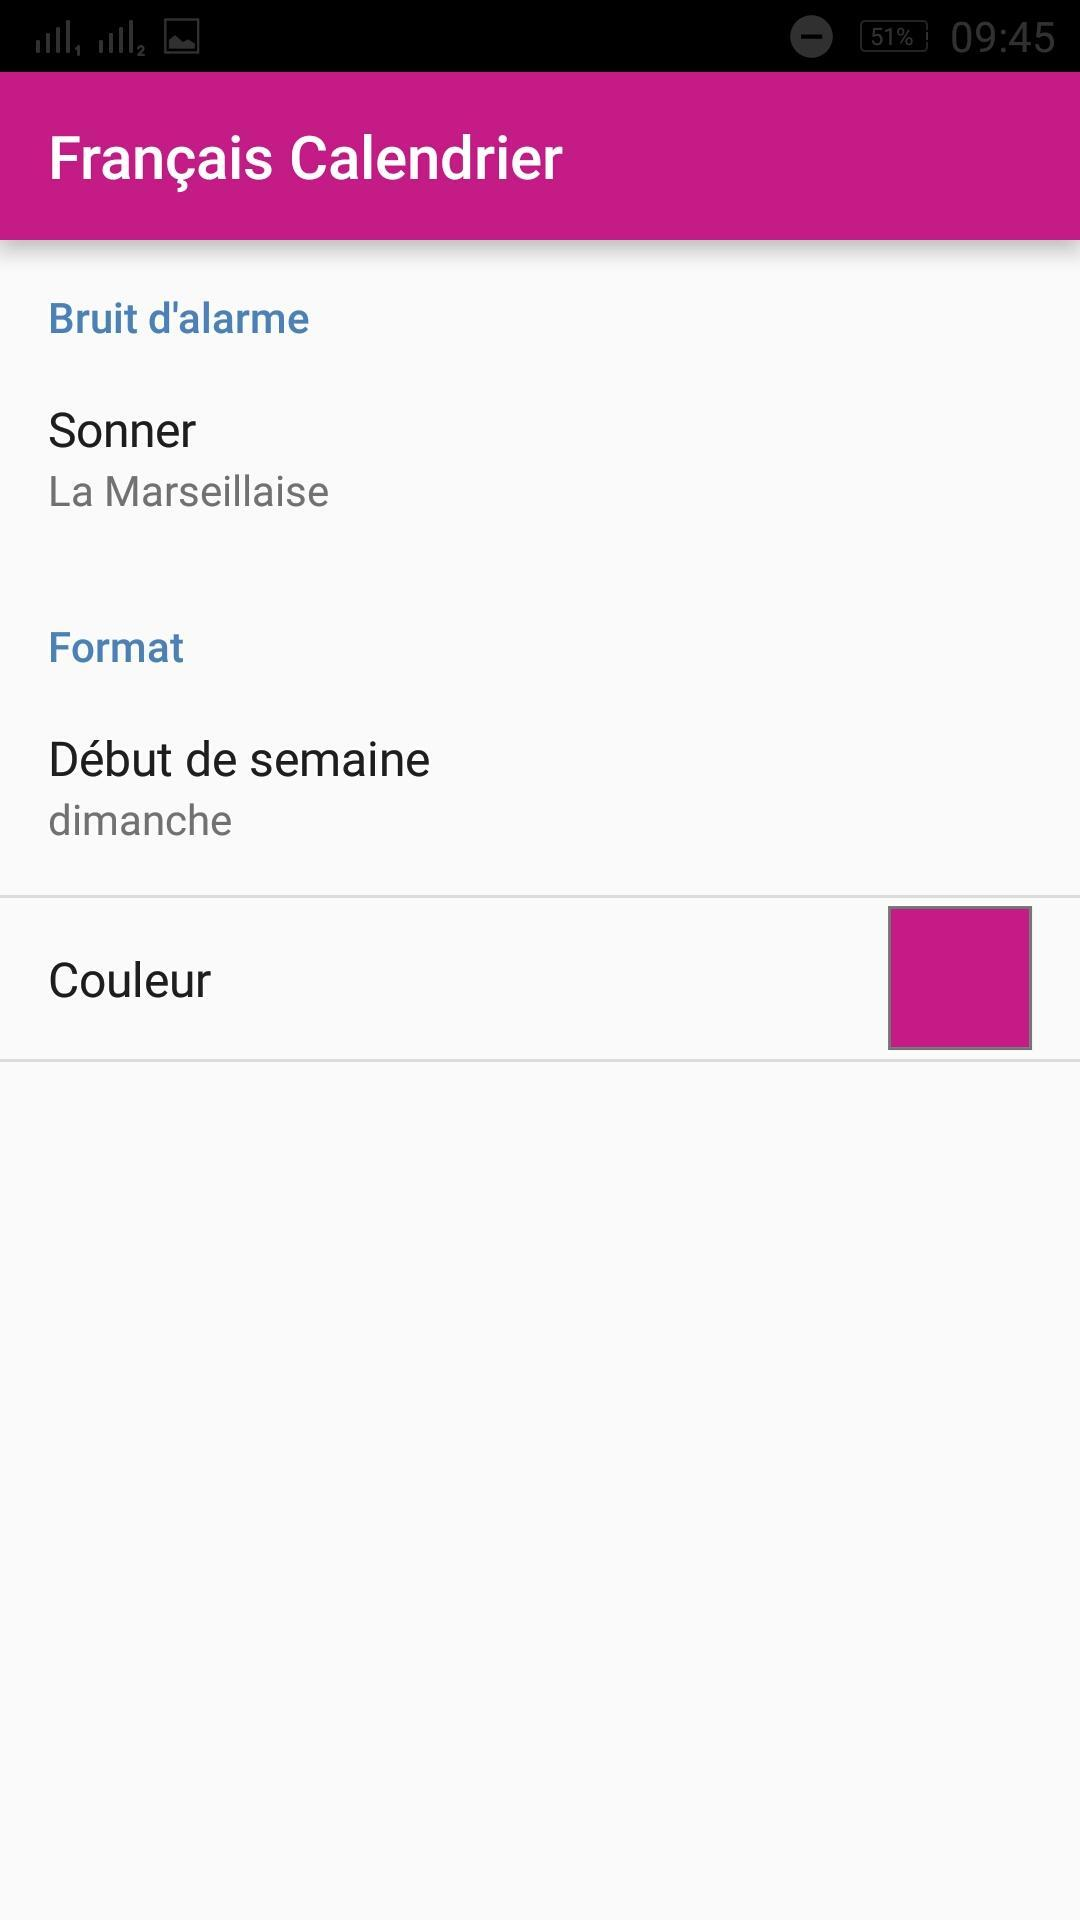 Semaine 45 Calendrier.Calendrier For Android Apk Download